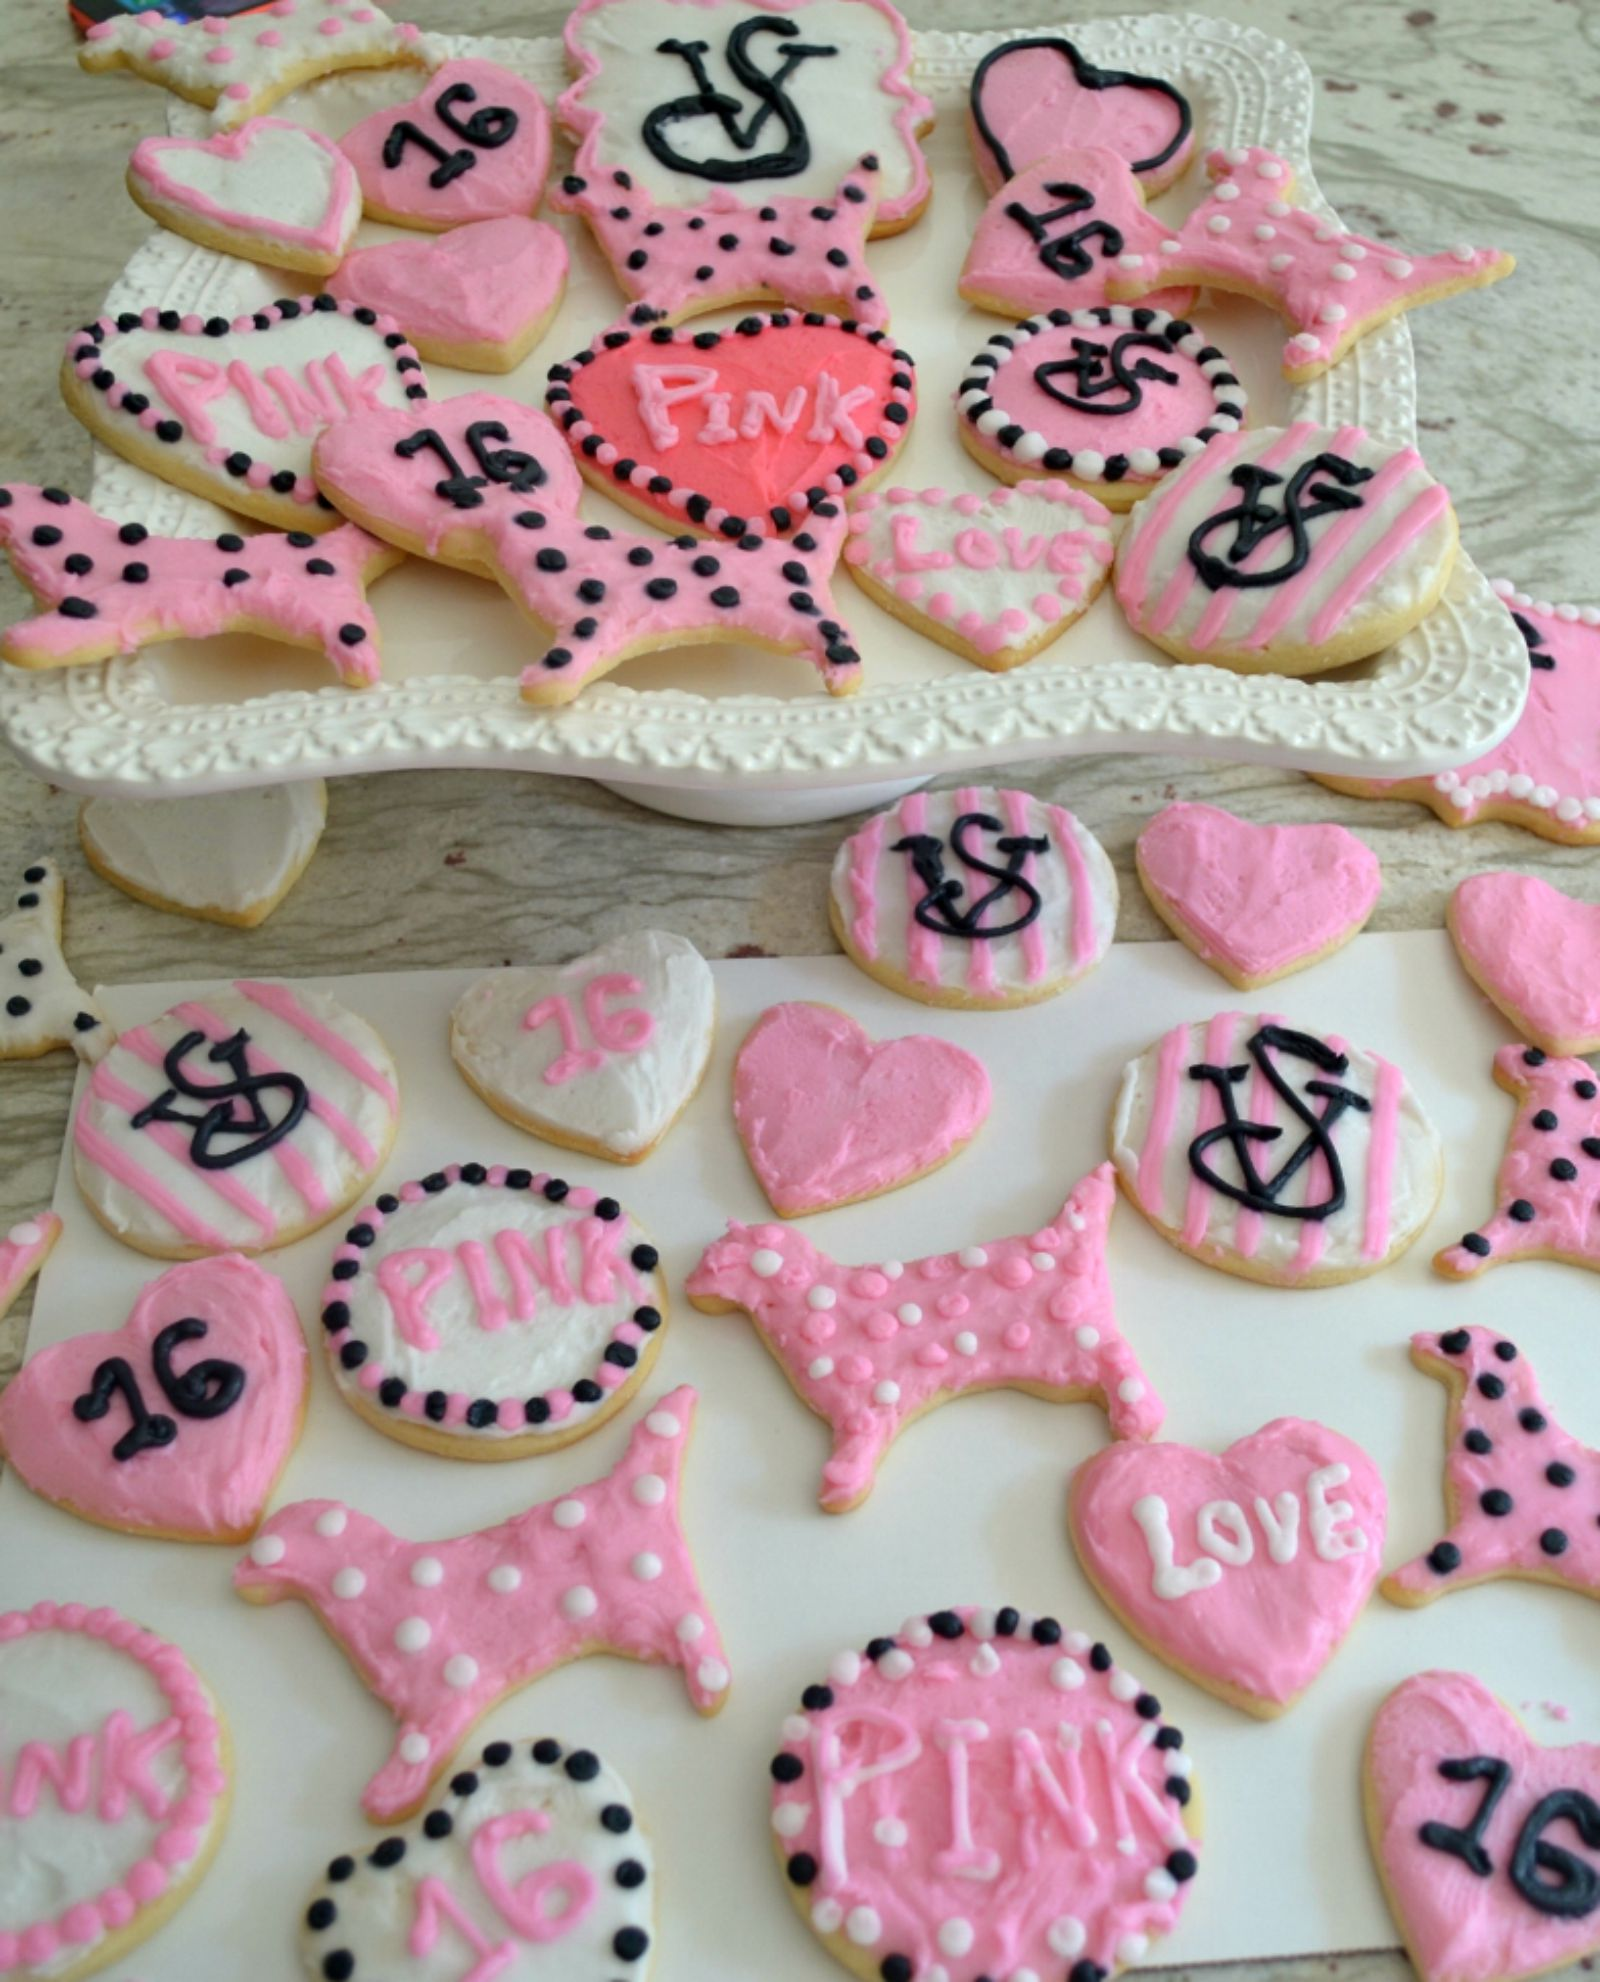 VS cookies, decorated sugar cookies for girls, pink sugar cookies